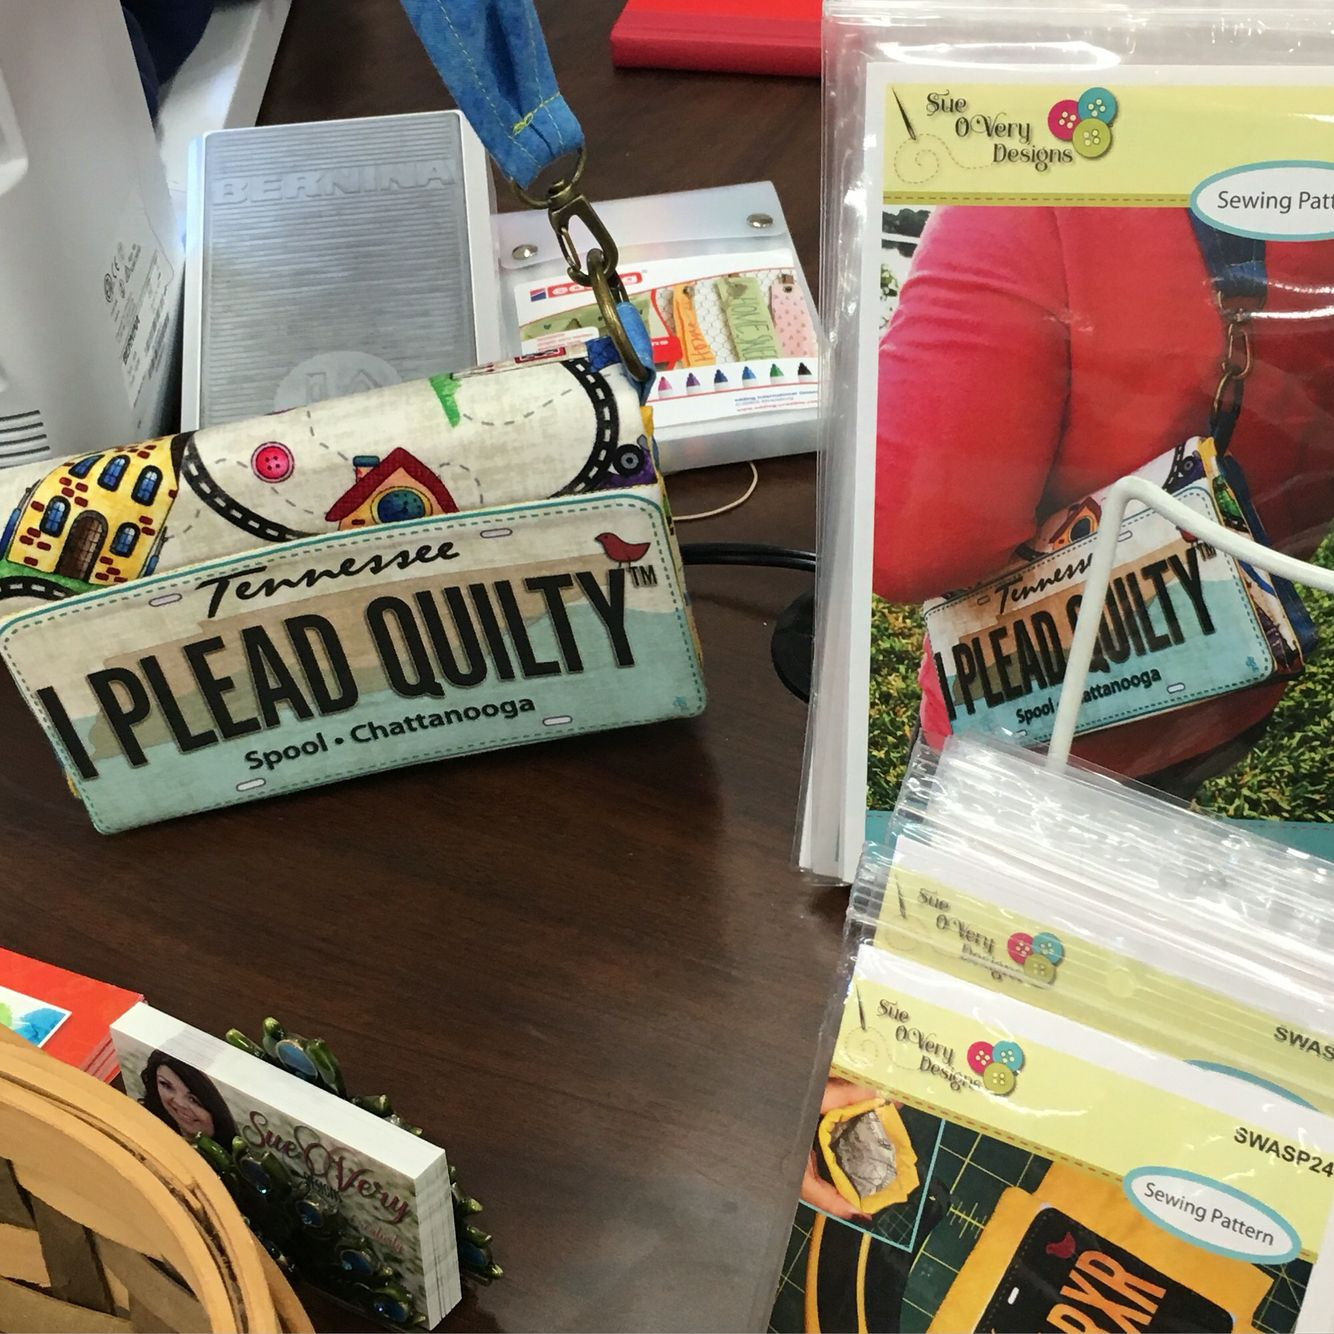 Sue OVery Design FabricPlate Row by Row inspired Mini bag ... : local quilt shops - Adamdwight.com